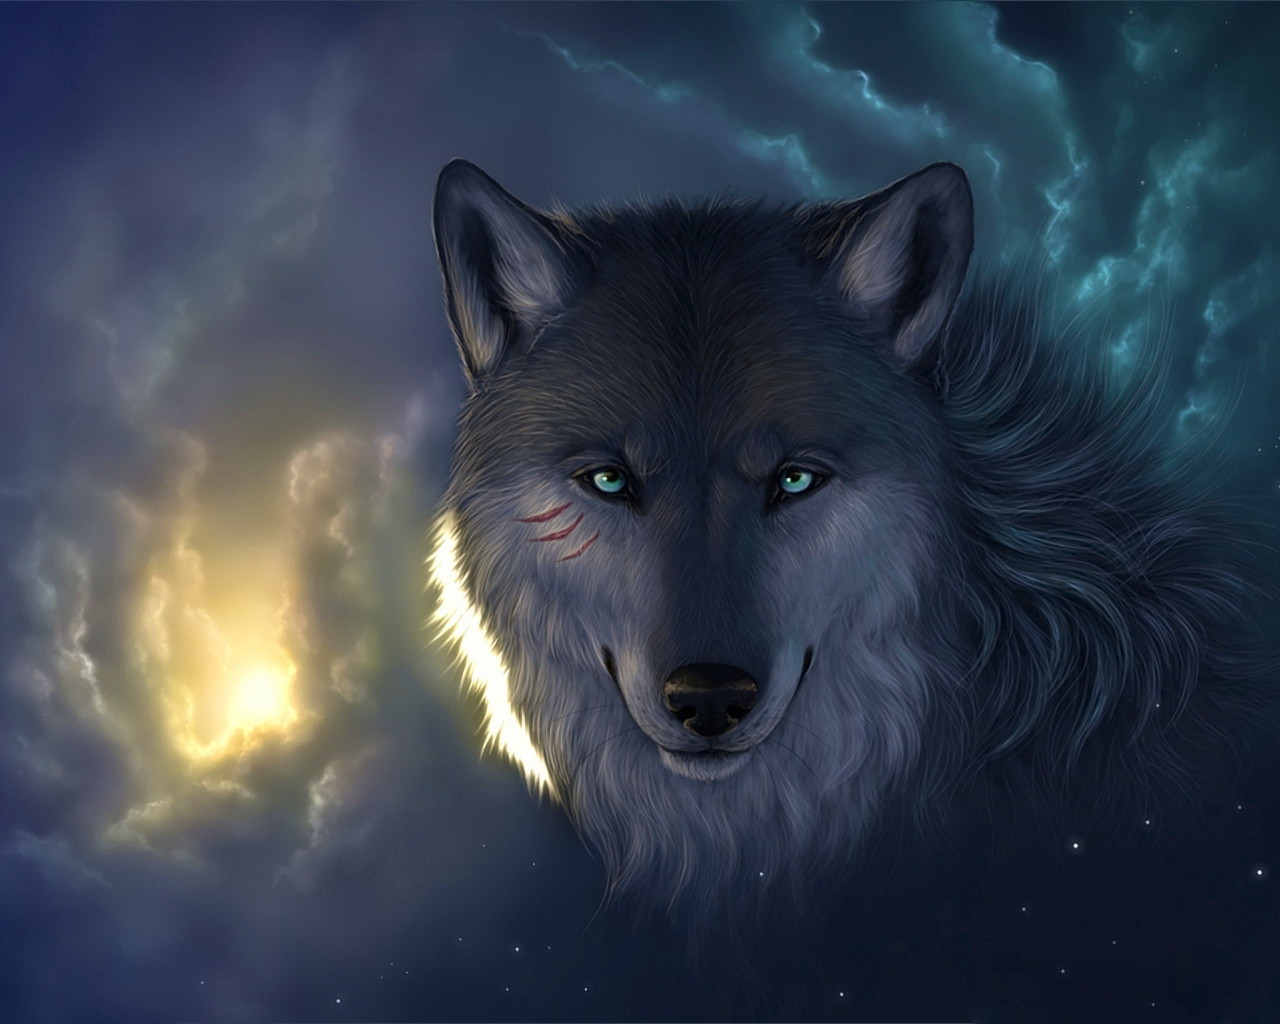 Cool Wolf Backgrounds 10818 Hd Wallpapers in Animals   Imagescicom 1280x1024